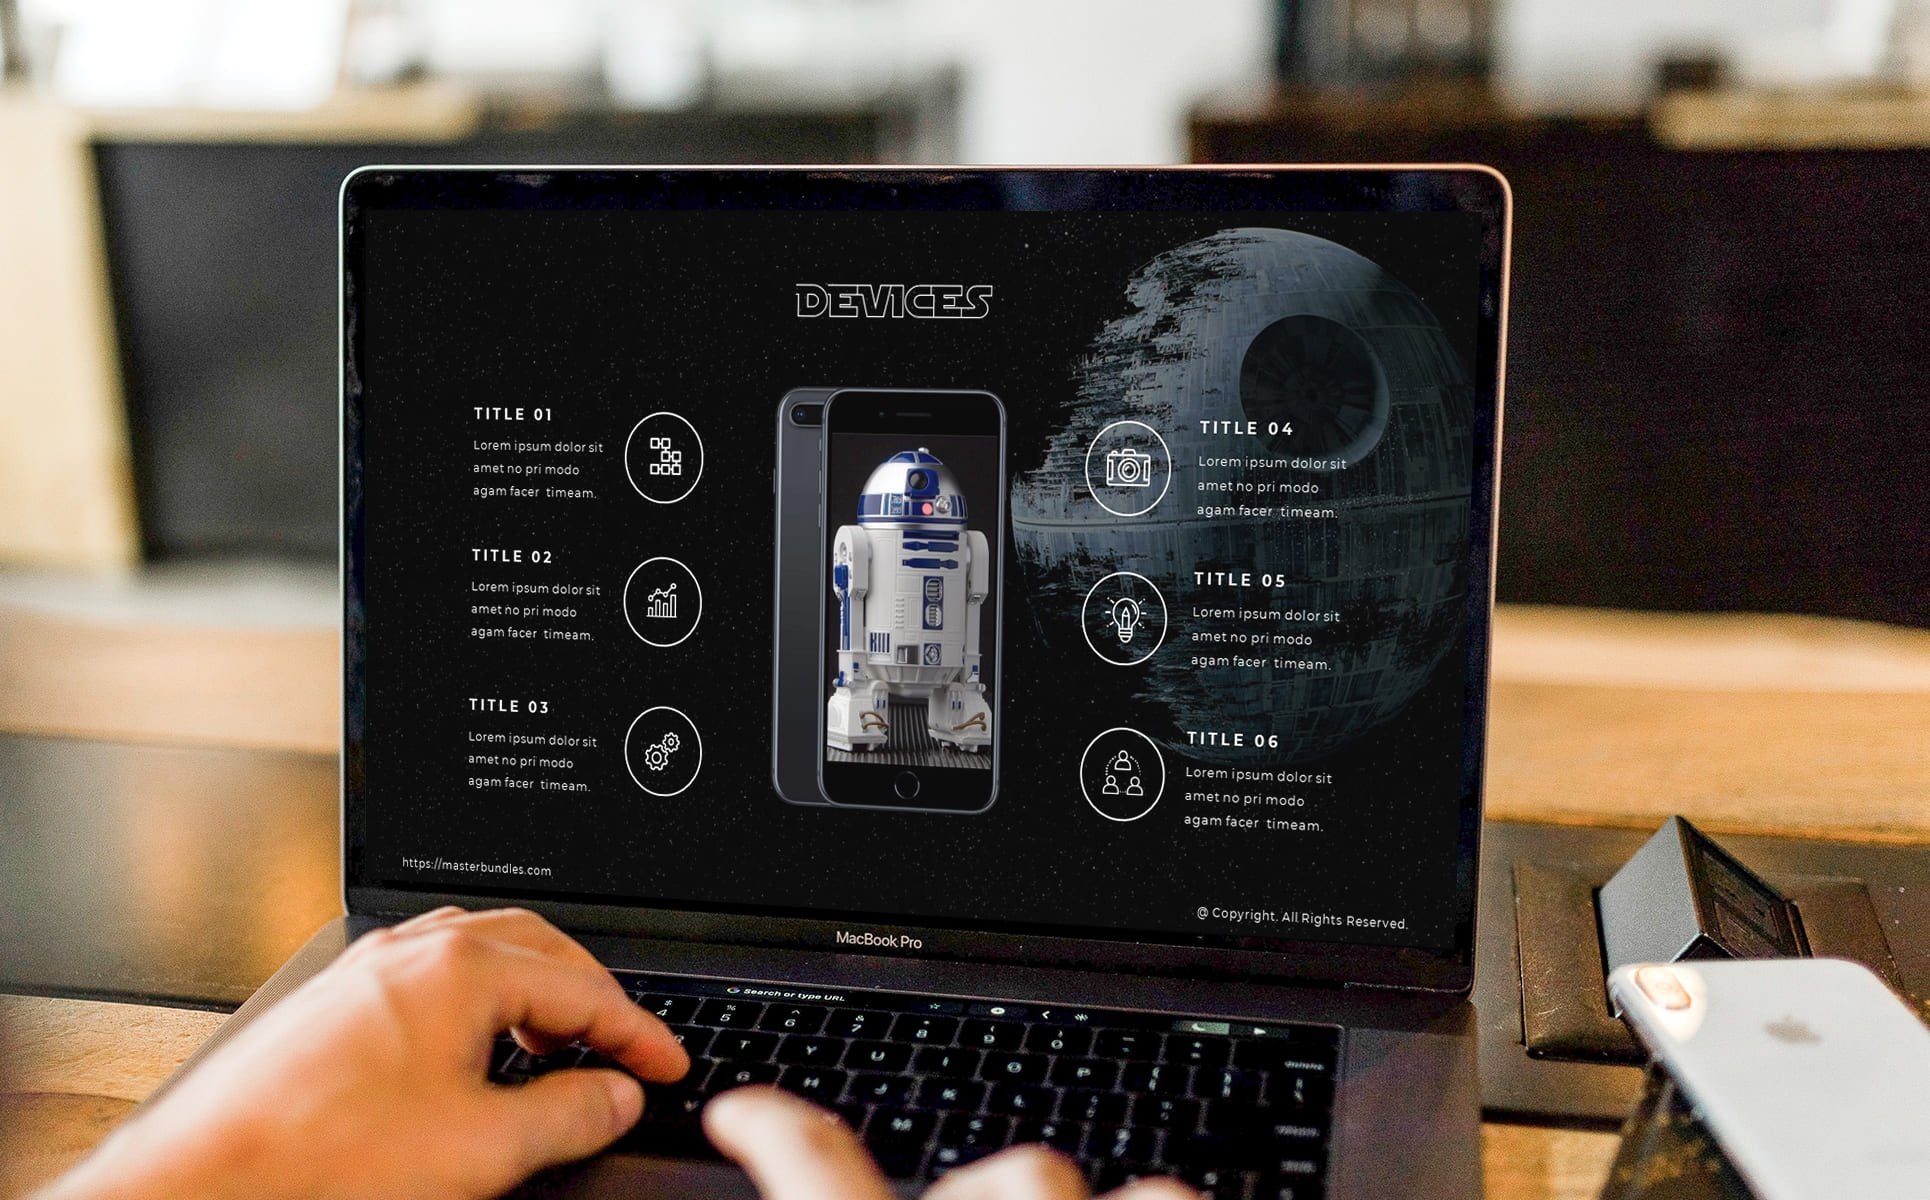 Person working with the slide with the image of Artoo-Detoo.